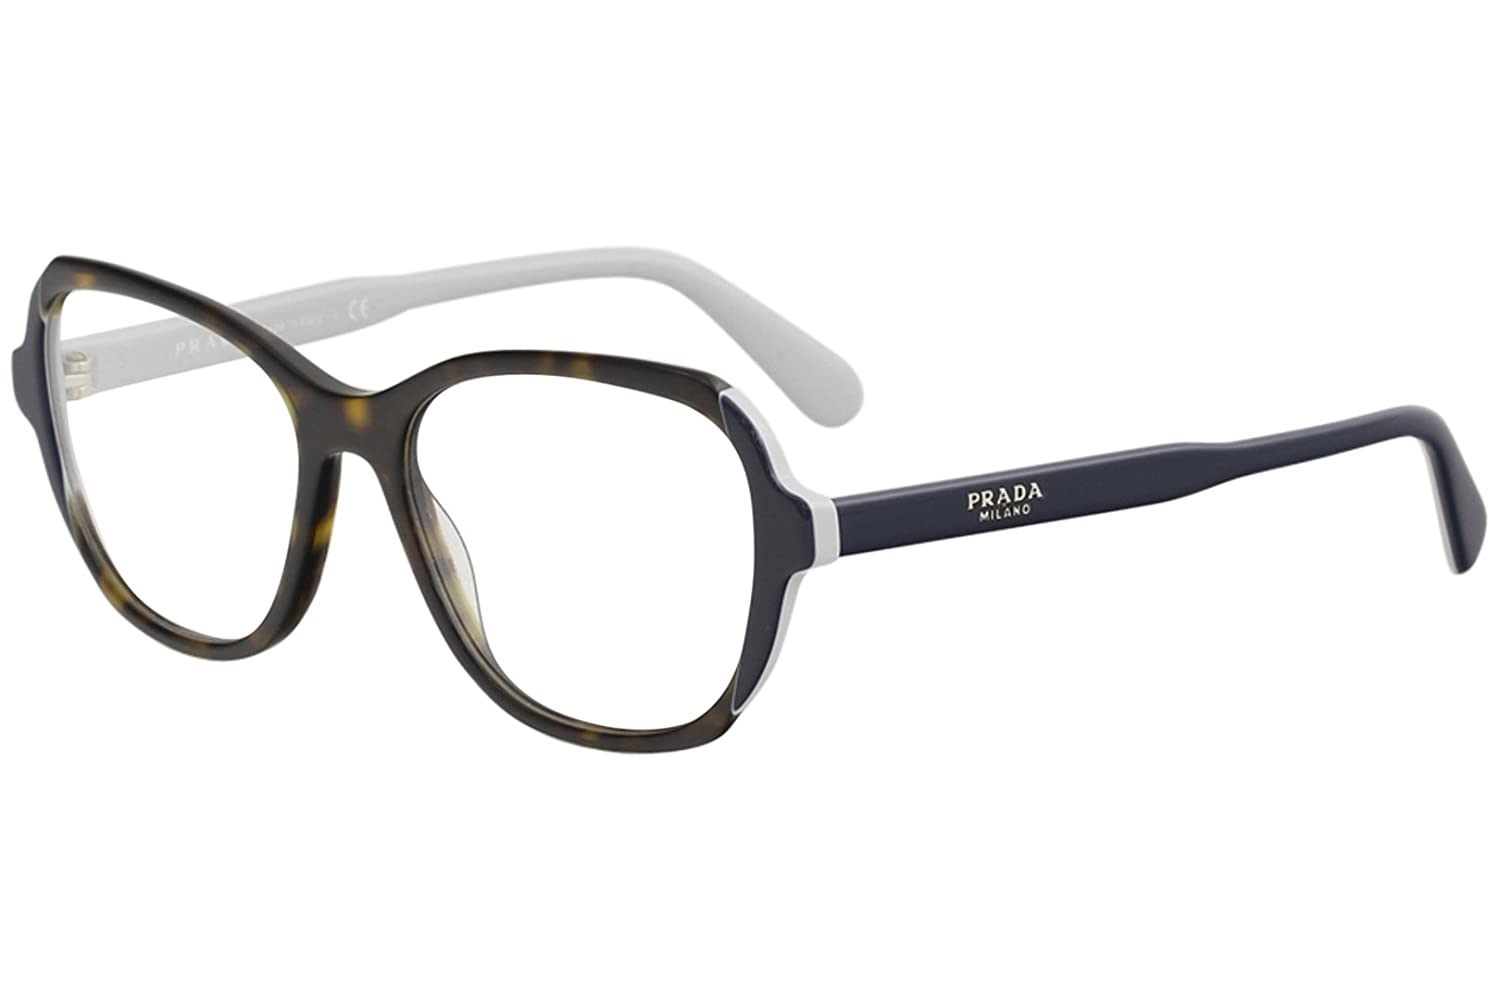 c20caea636 Eyeglasses Prada PR 3 VV W3C1O1 HAVANA TOP BLUE GREY at Amazon Men s  Clothing store